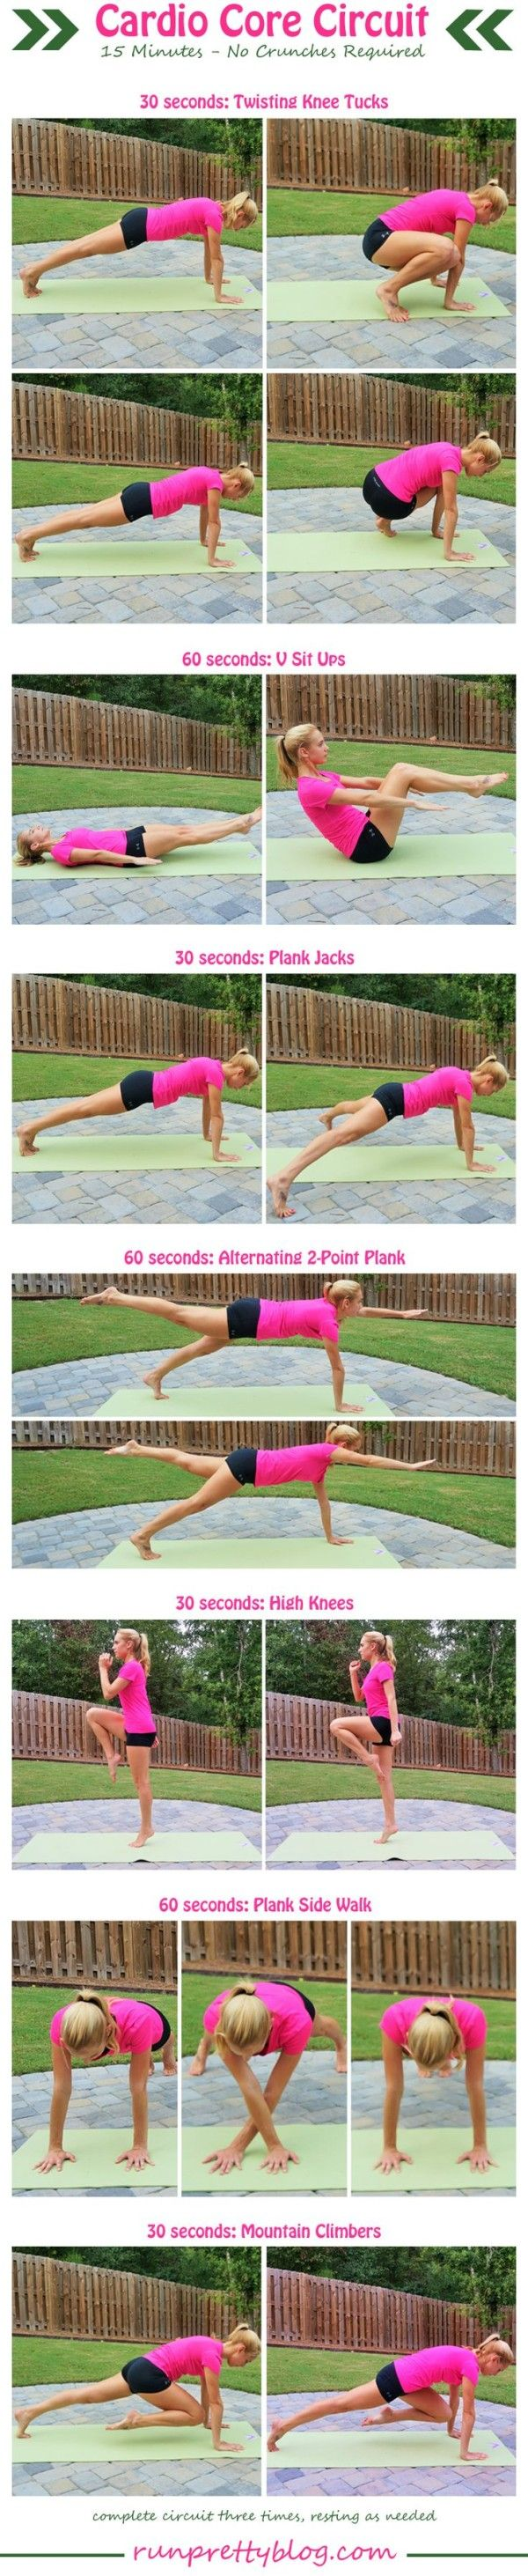 Cardio Core Circuit from RunPrettyBlog.com - plus more workouts for the abs and core.